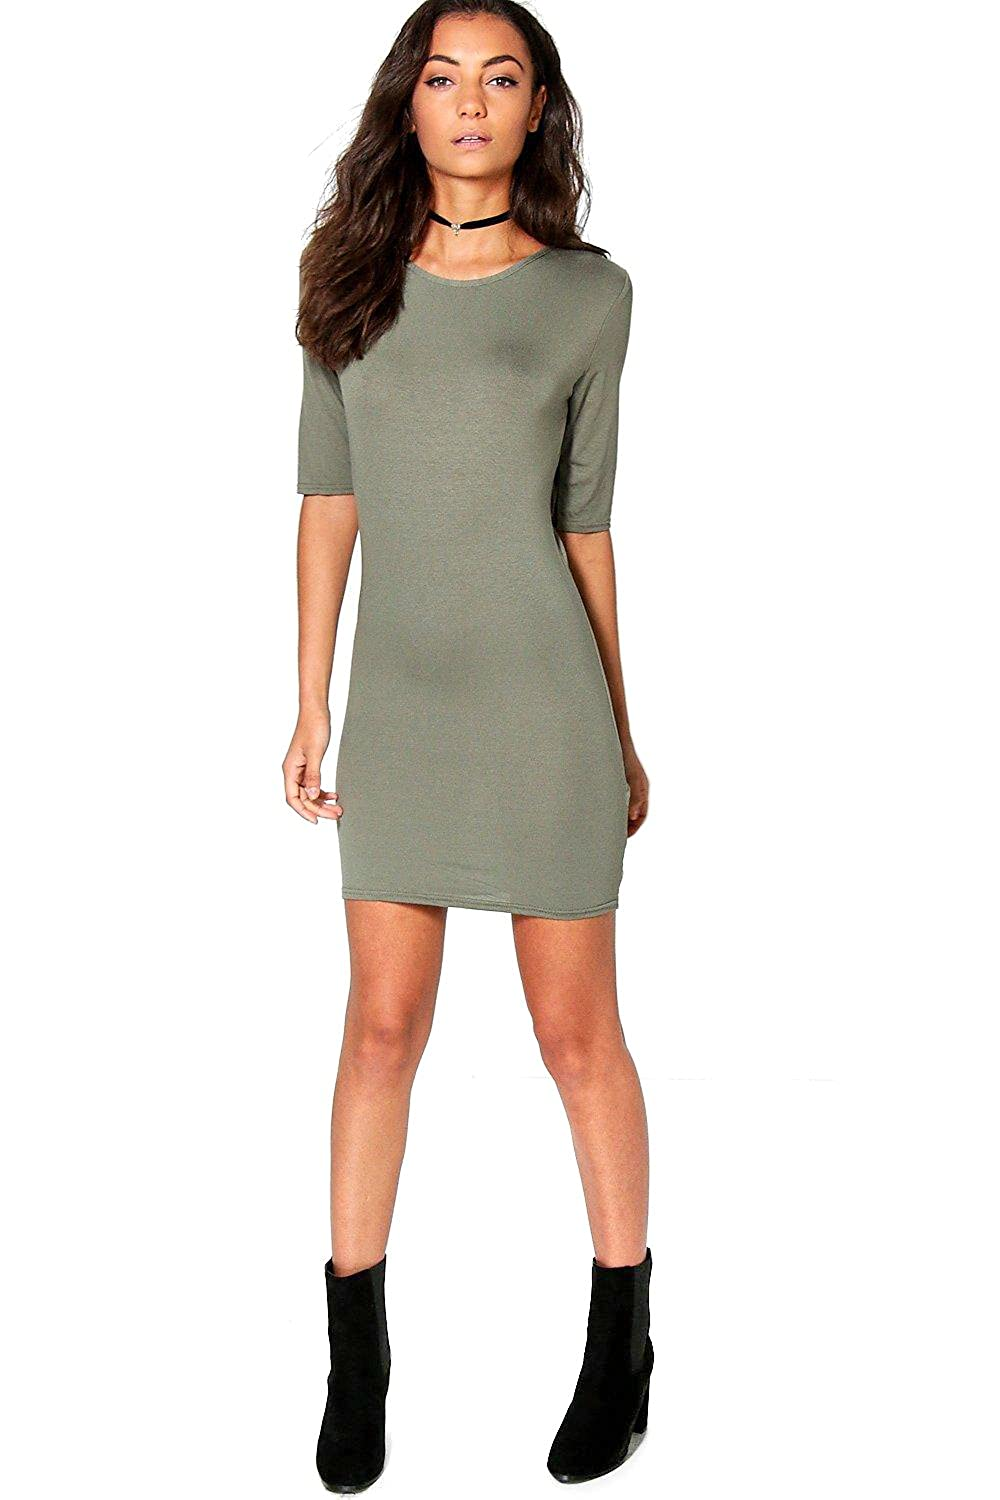 Khaki Womens Tall Raya Strappy Back T-Shirt Dress